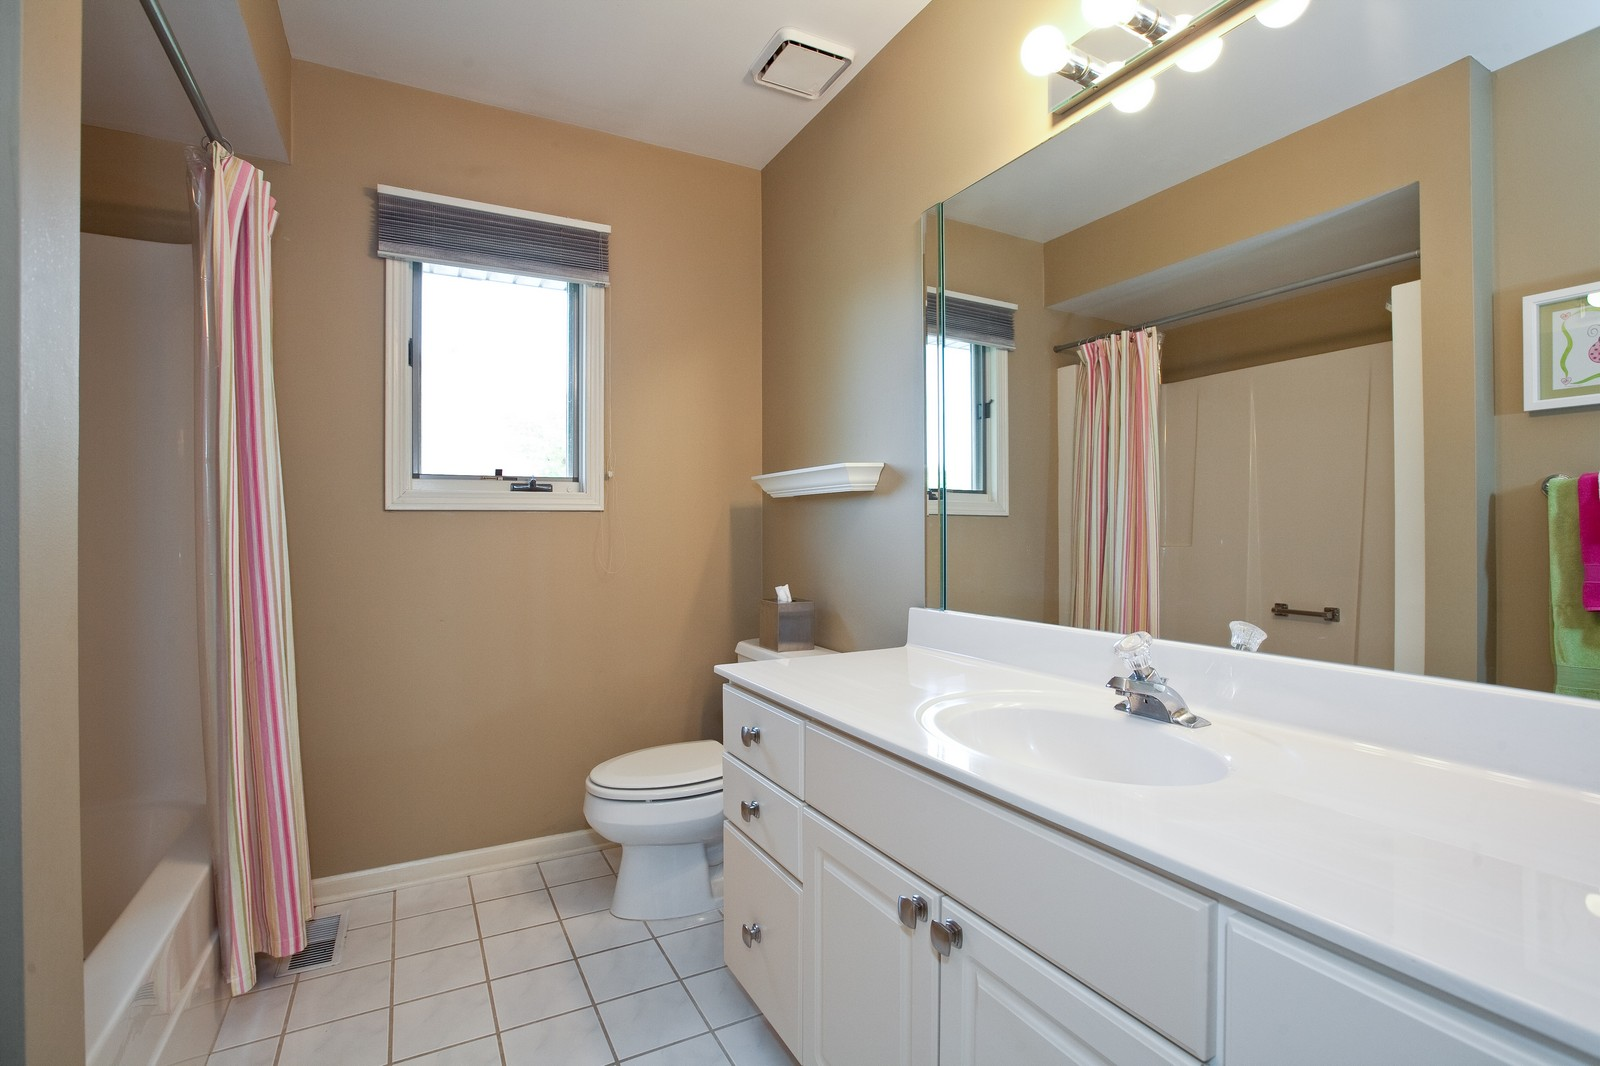 Real Estate Photography - 1031 W. 119th St, Lemont, IL, 60439 - Bathroom